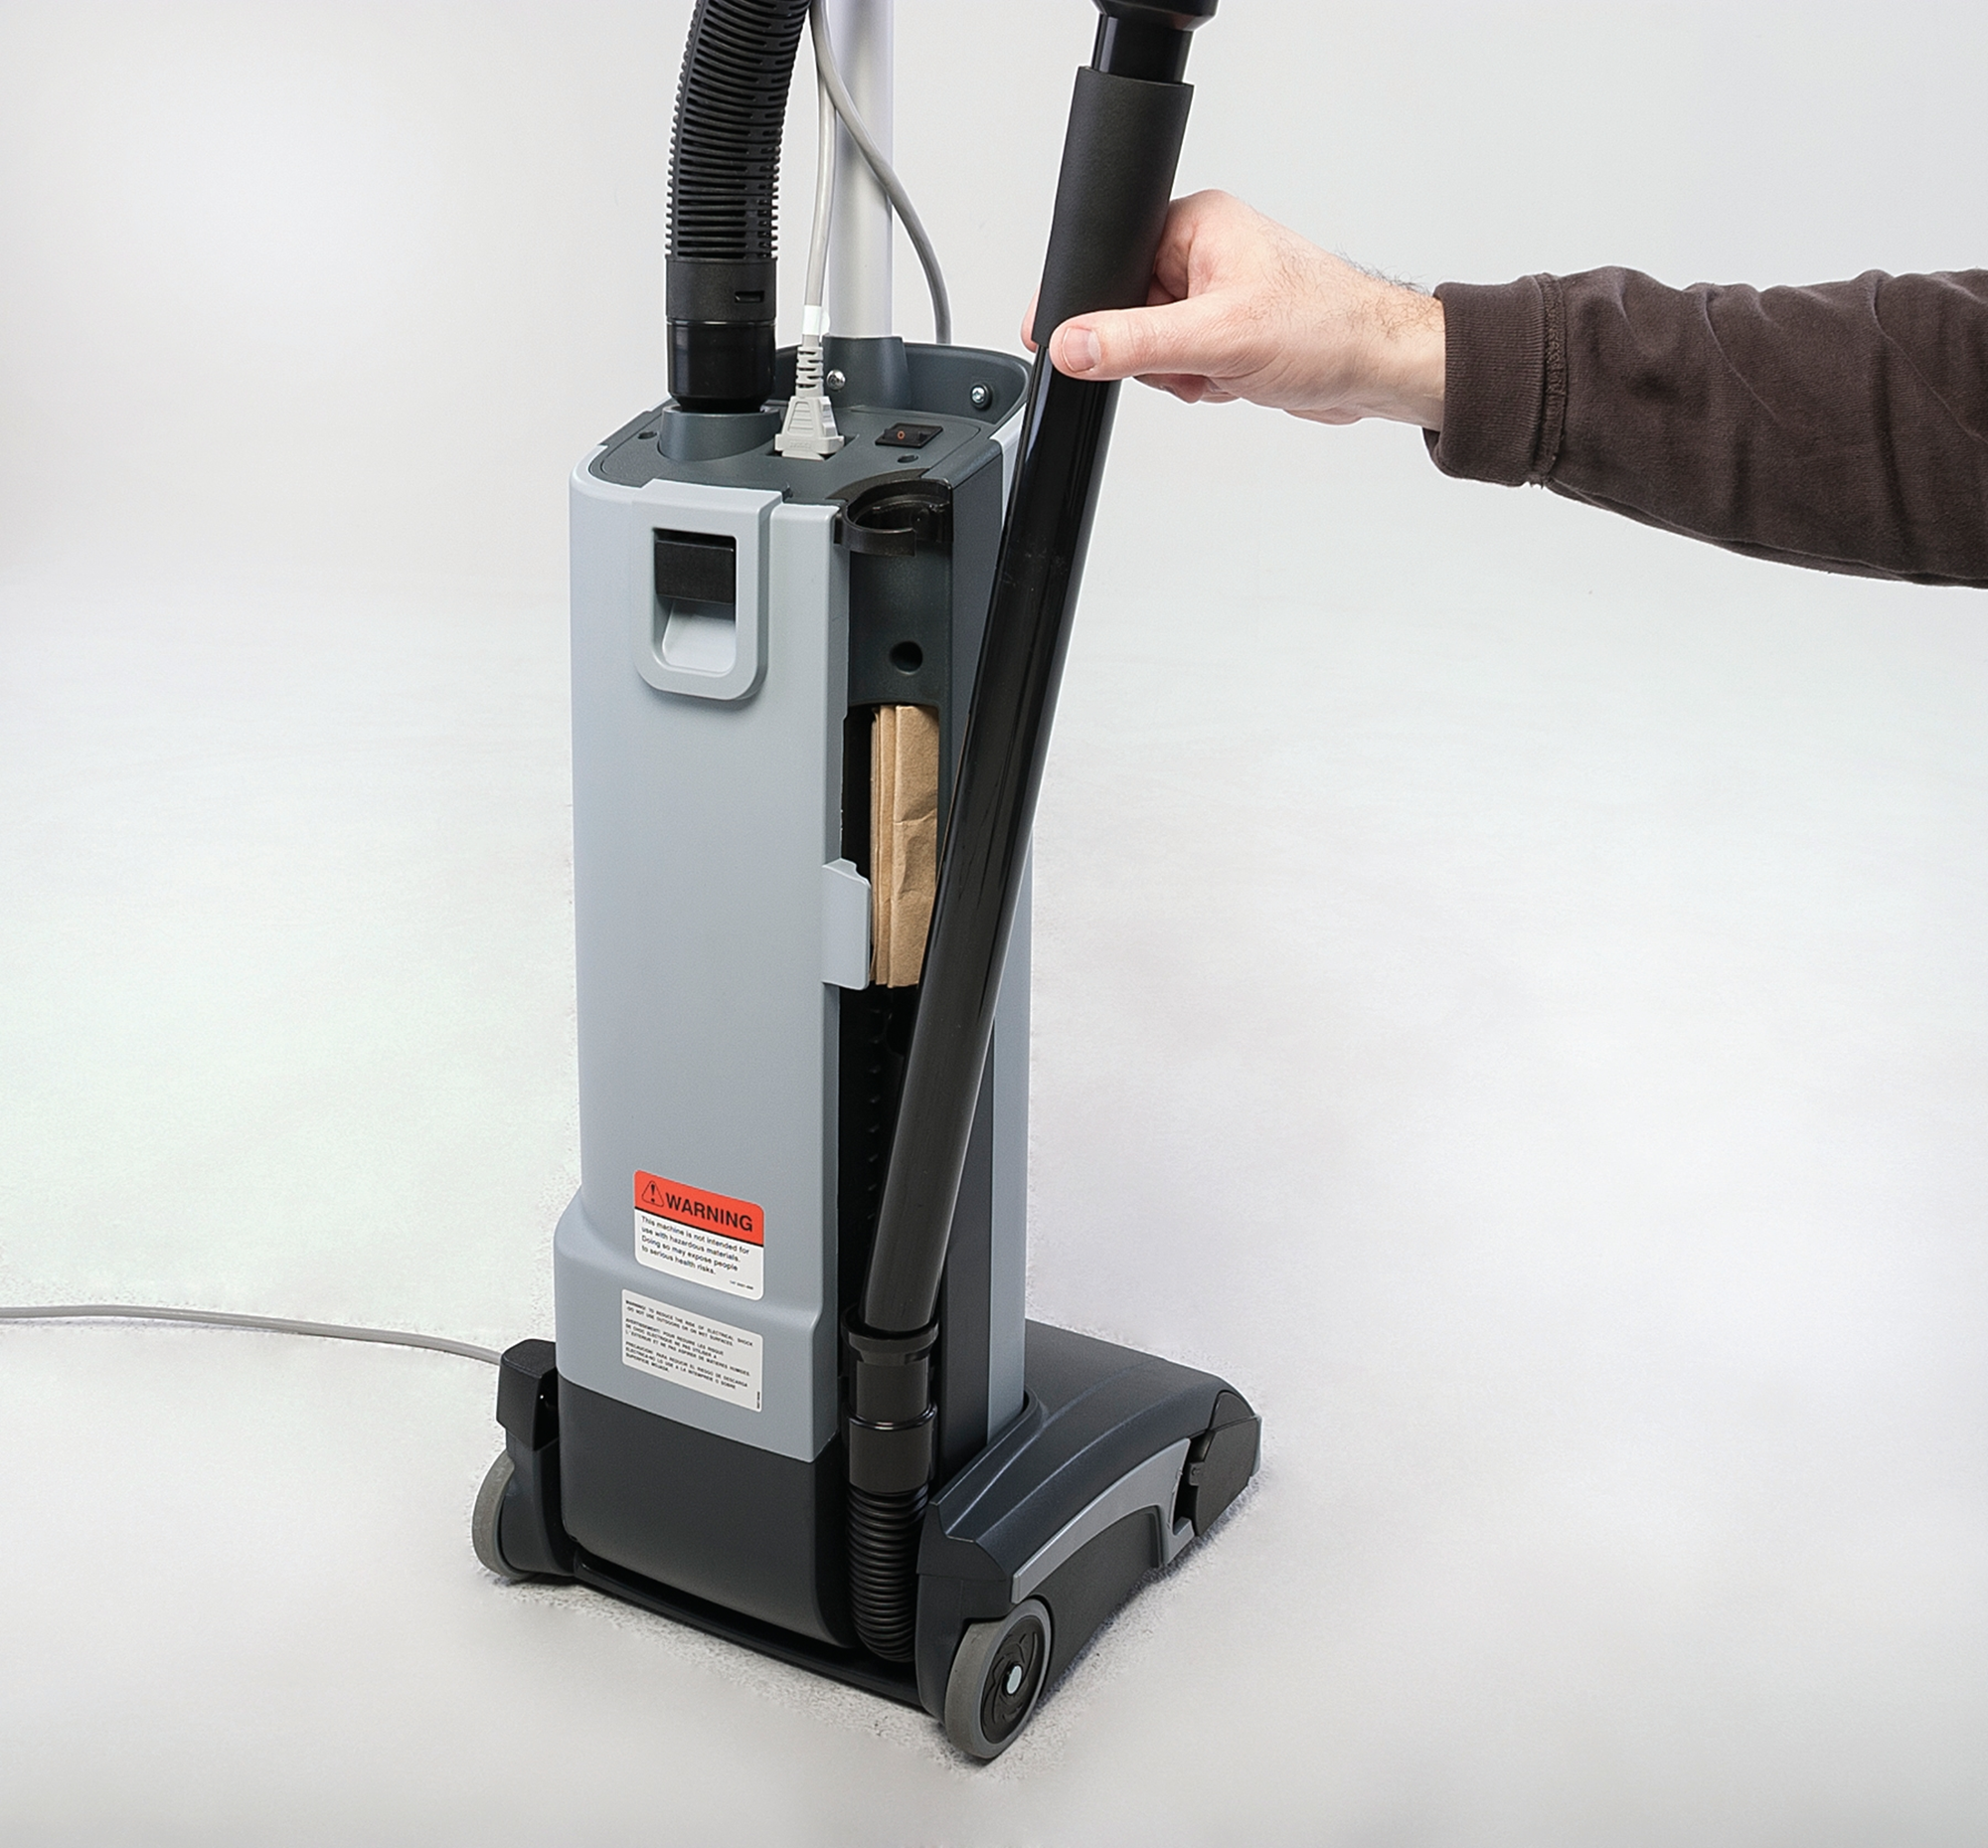 Product, Vacuum cleaners, Commercial vacuum cleaners, Upright vacuum cleaners, Nilfisk, VU500 15INCH UPRIGHT VAC US